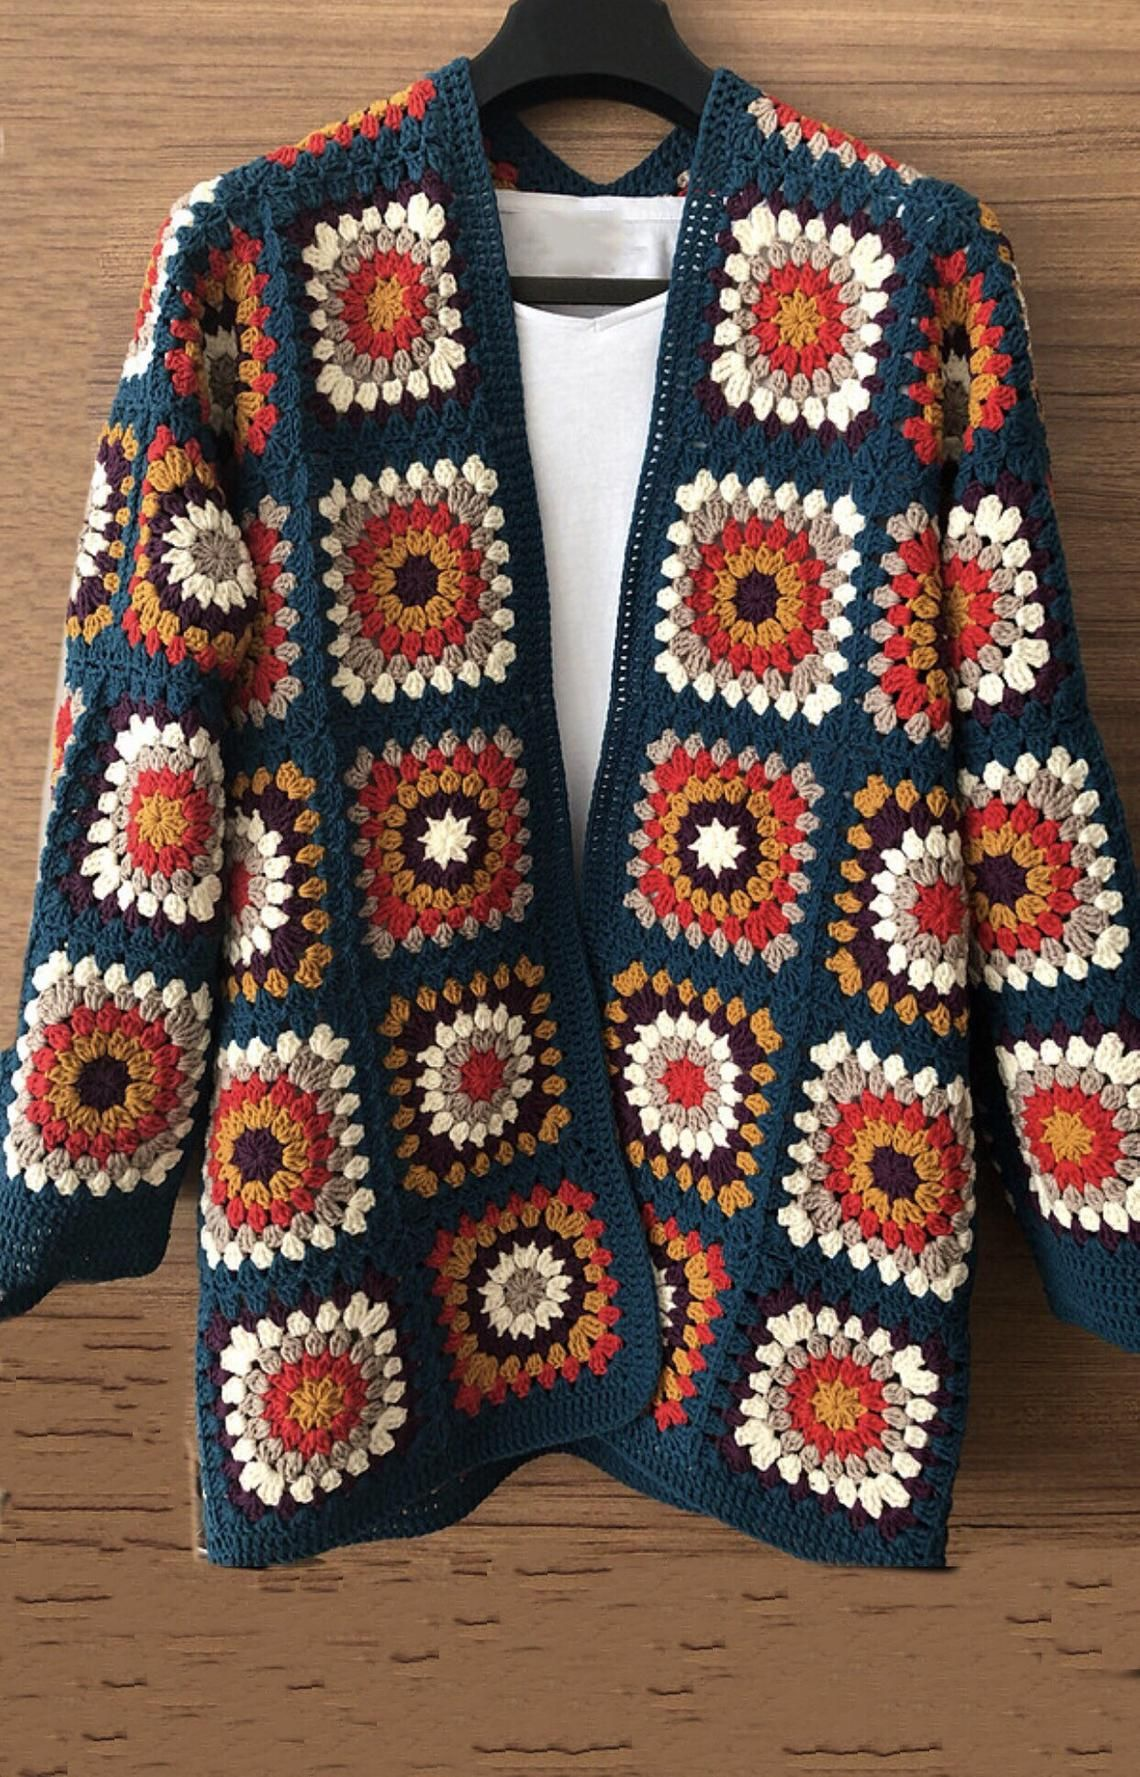 Granny square cardigan, crochet cardigan, jumper,handmade cardigan, colourful cardigan